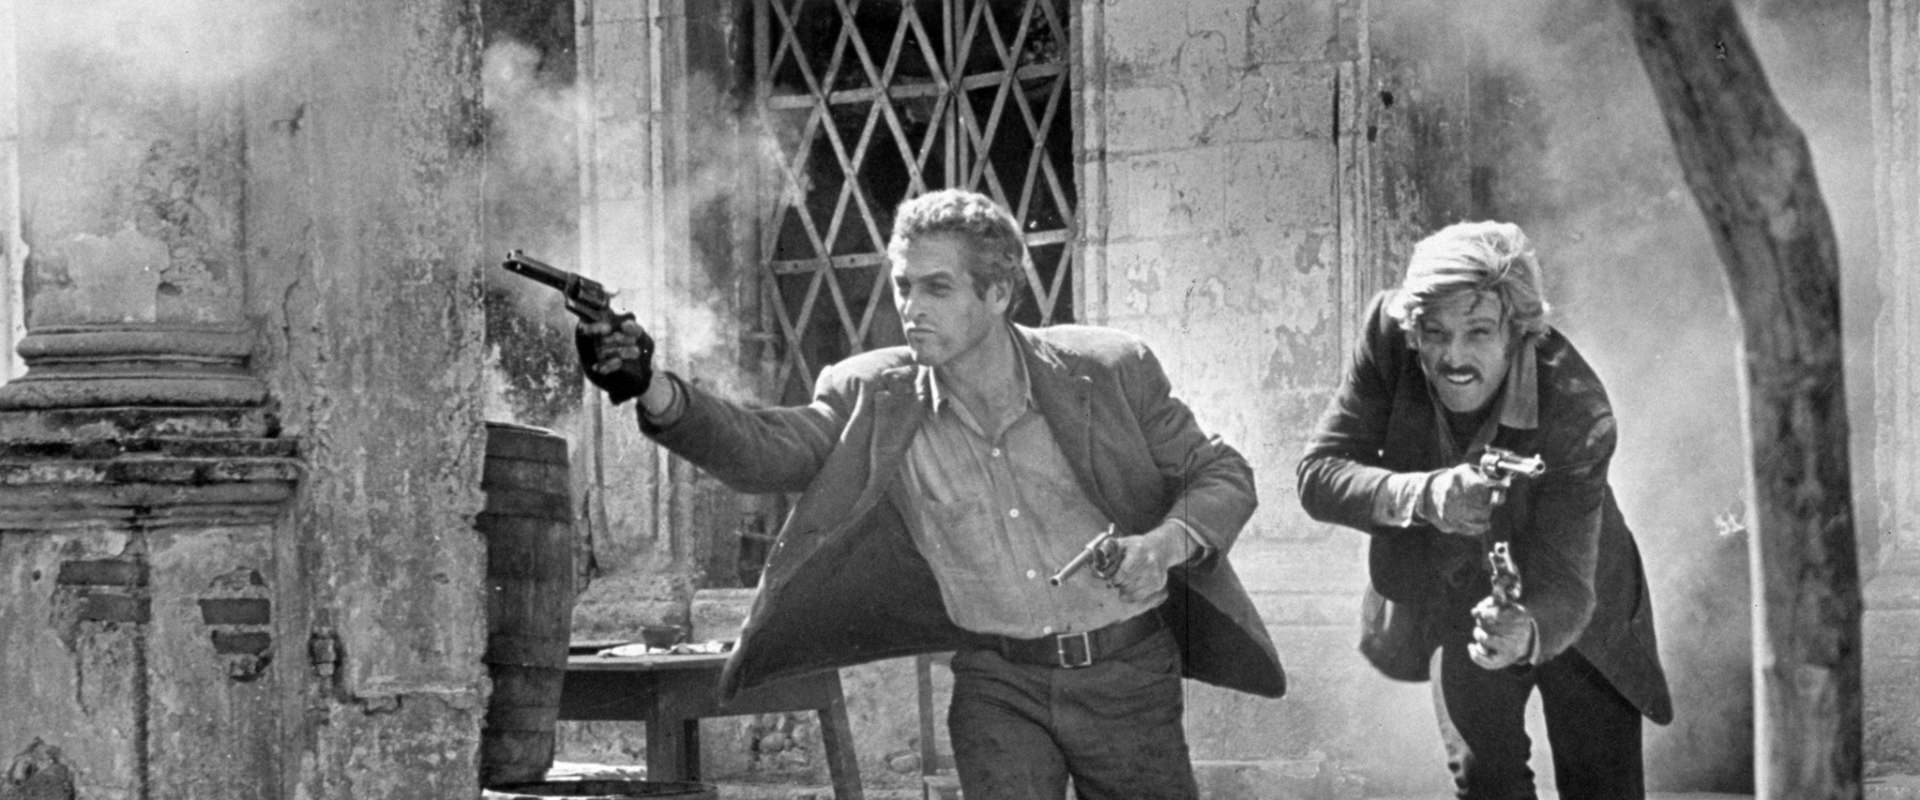 Butch Cassidy and the Sundance Kid background 2